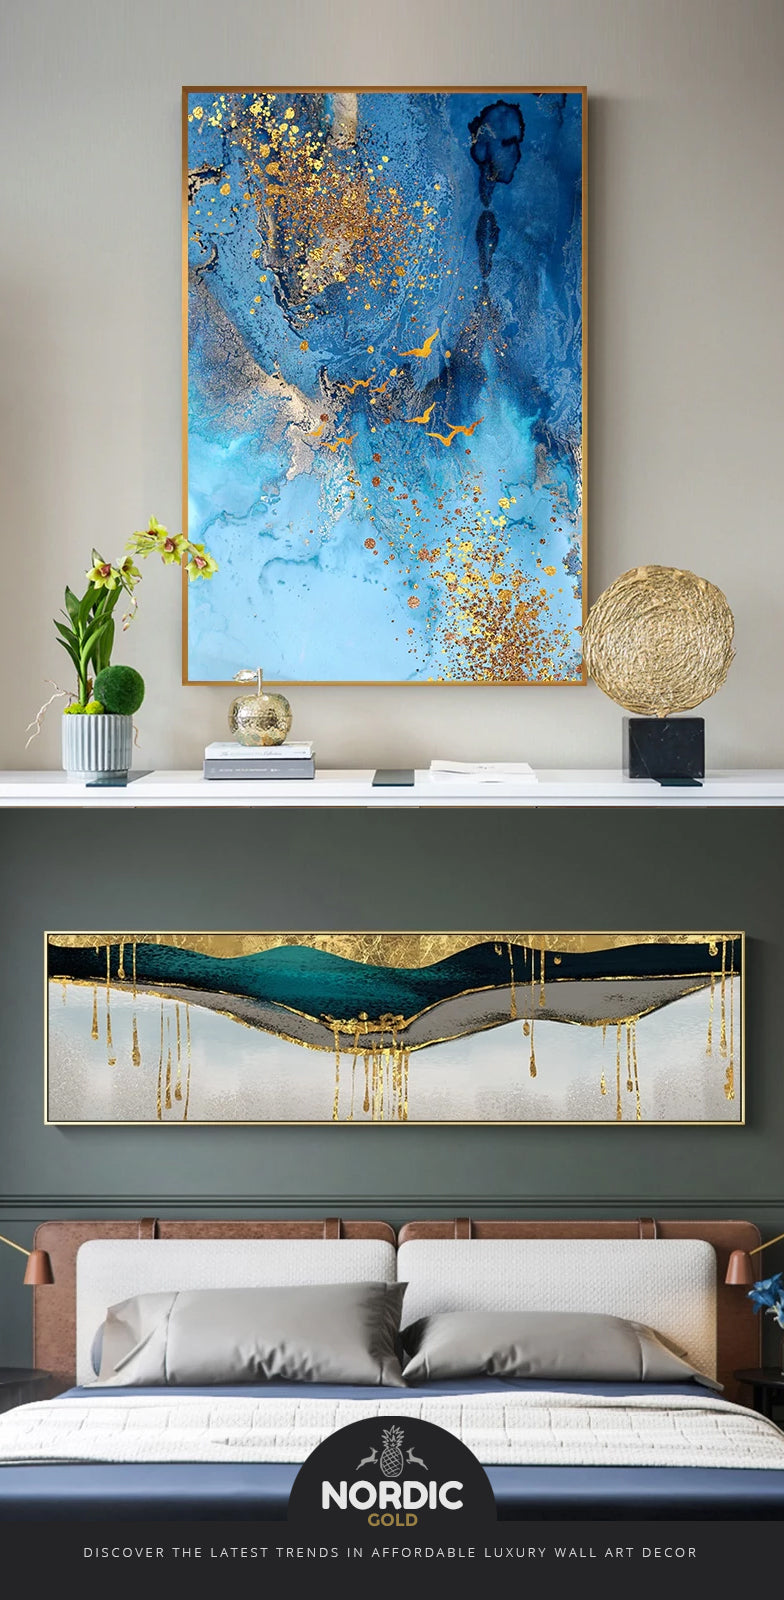 Discover the latest trends in luxury wall art decor for the home and office